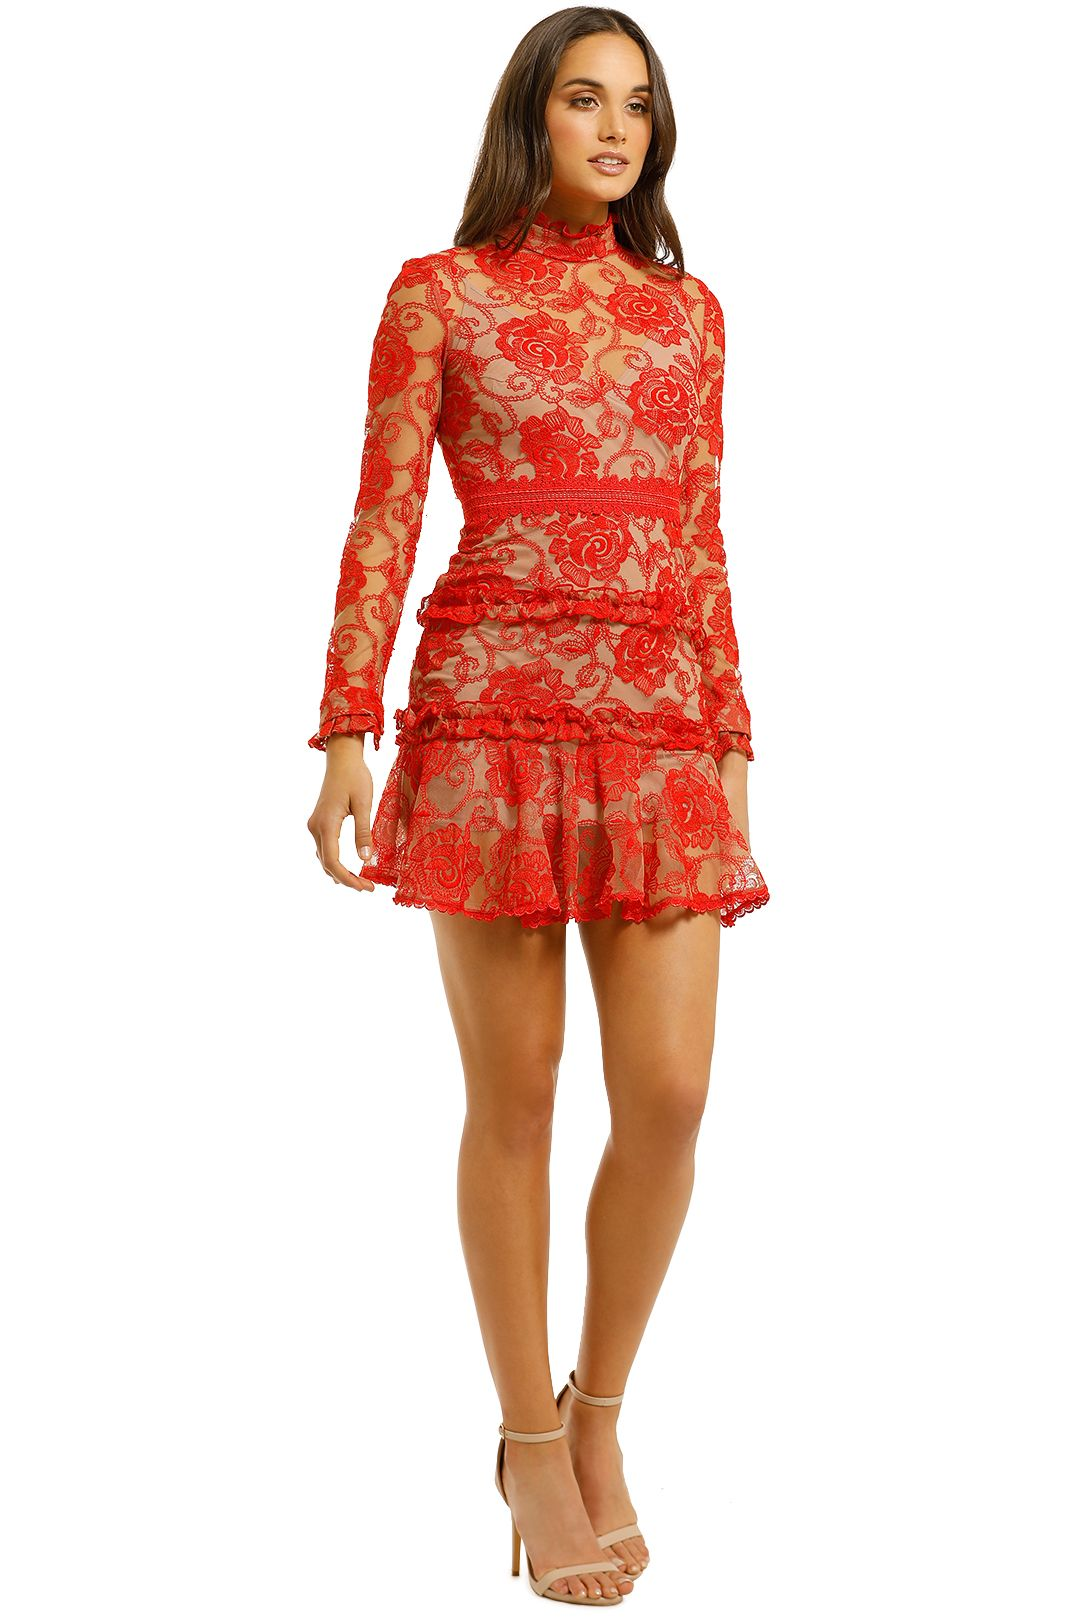 Nicholas-The-Label-Rosie-Lace-High-Neck-Red-Side